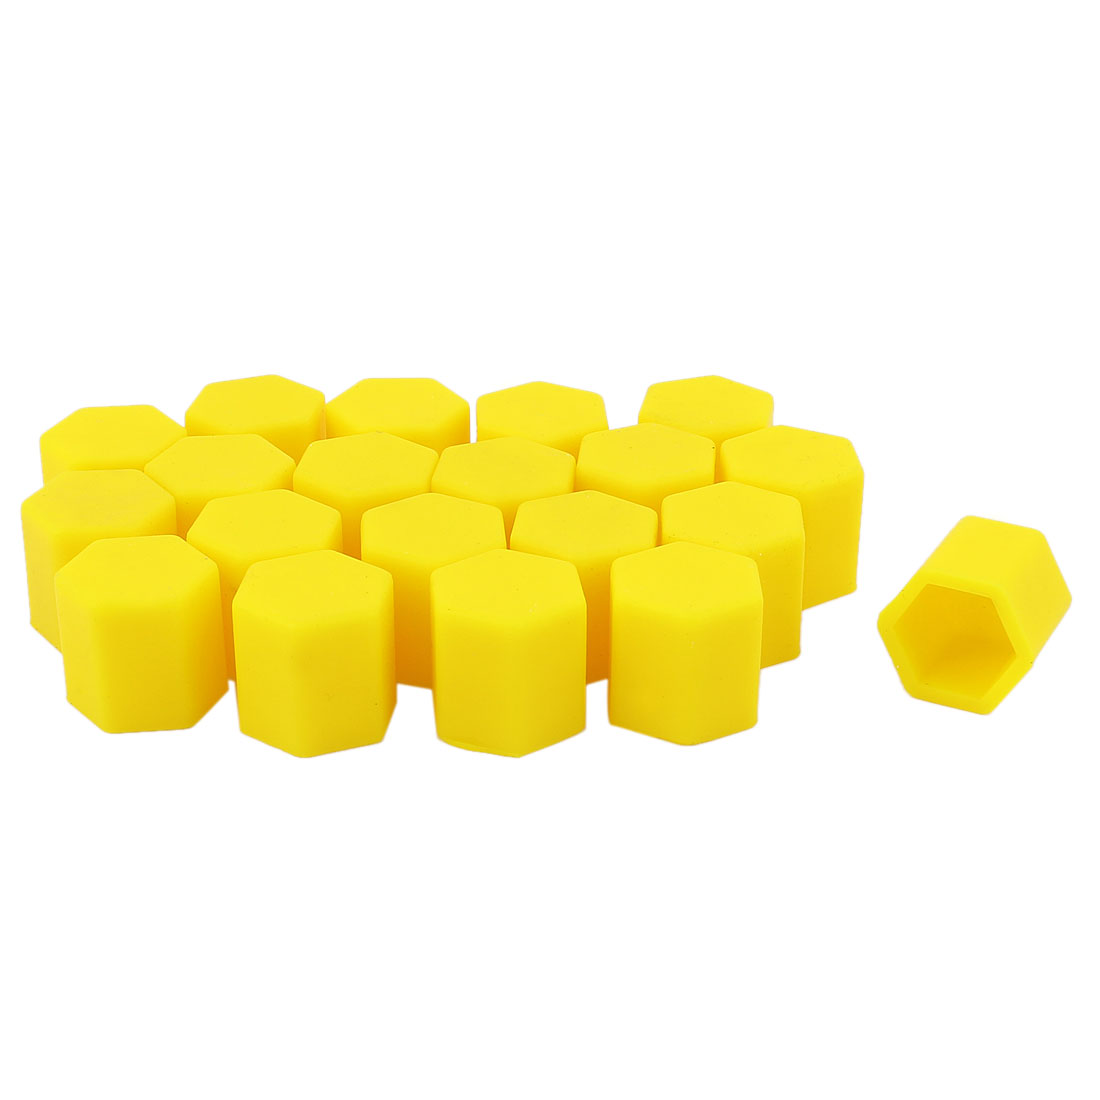 20Pcs Yellow Silicone Car Wheel Hex Nuts Bolts Hub Screw Dust Covers Caps Protector 17mm